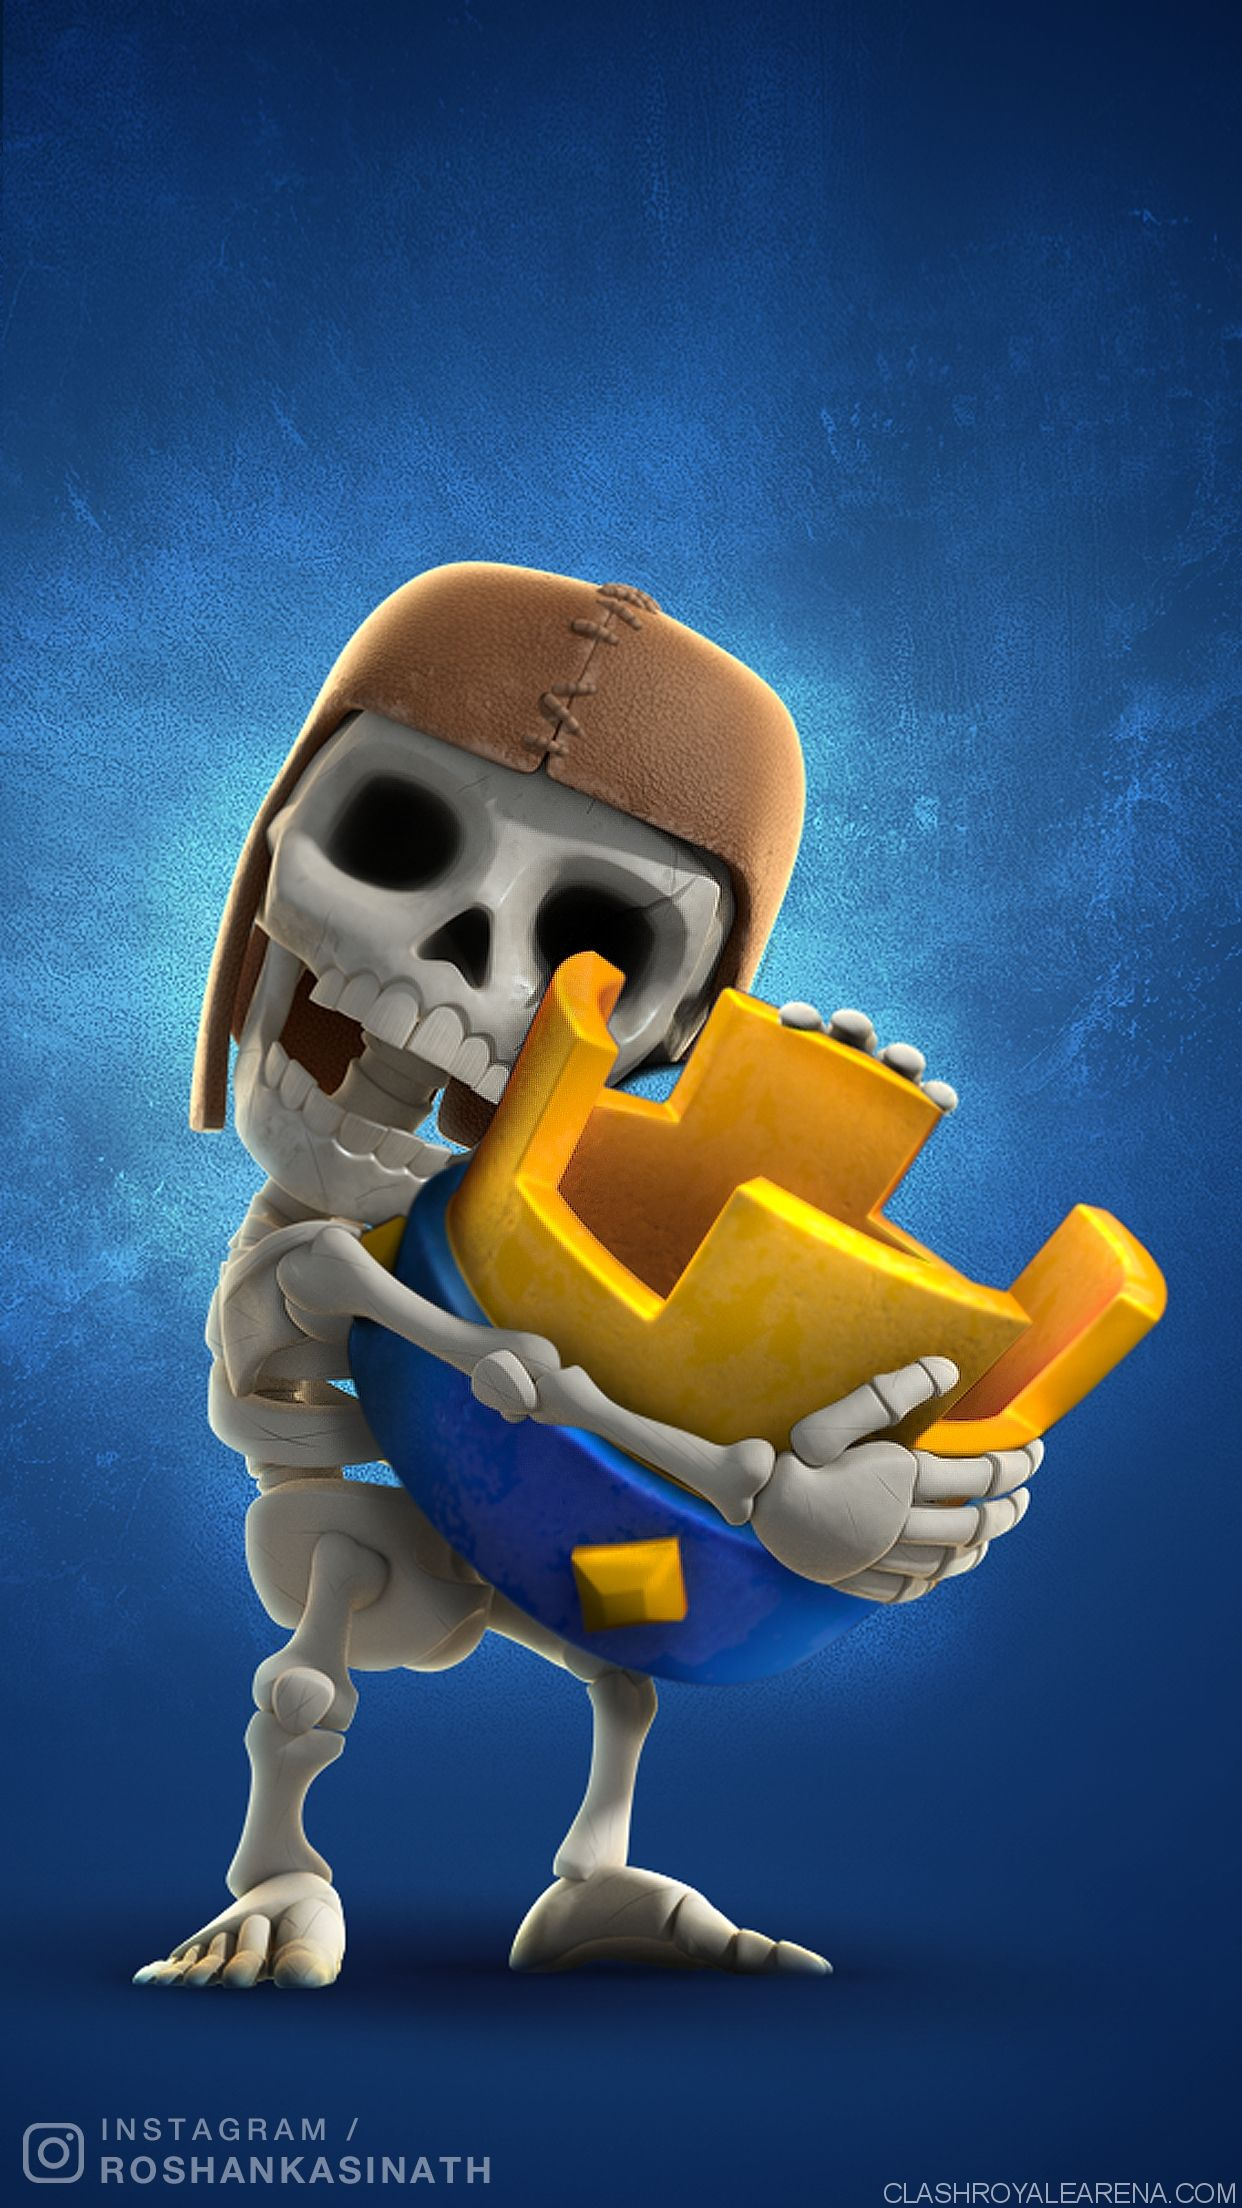 10 New Clash Royale Phone Wallpaper Full Hd 1920 1080 For Pc Desktop Clash Royale Wallpaper Clash Royale Clash Of Clans